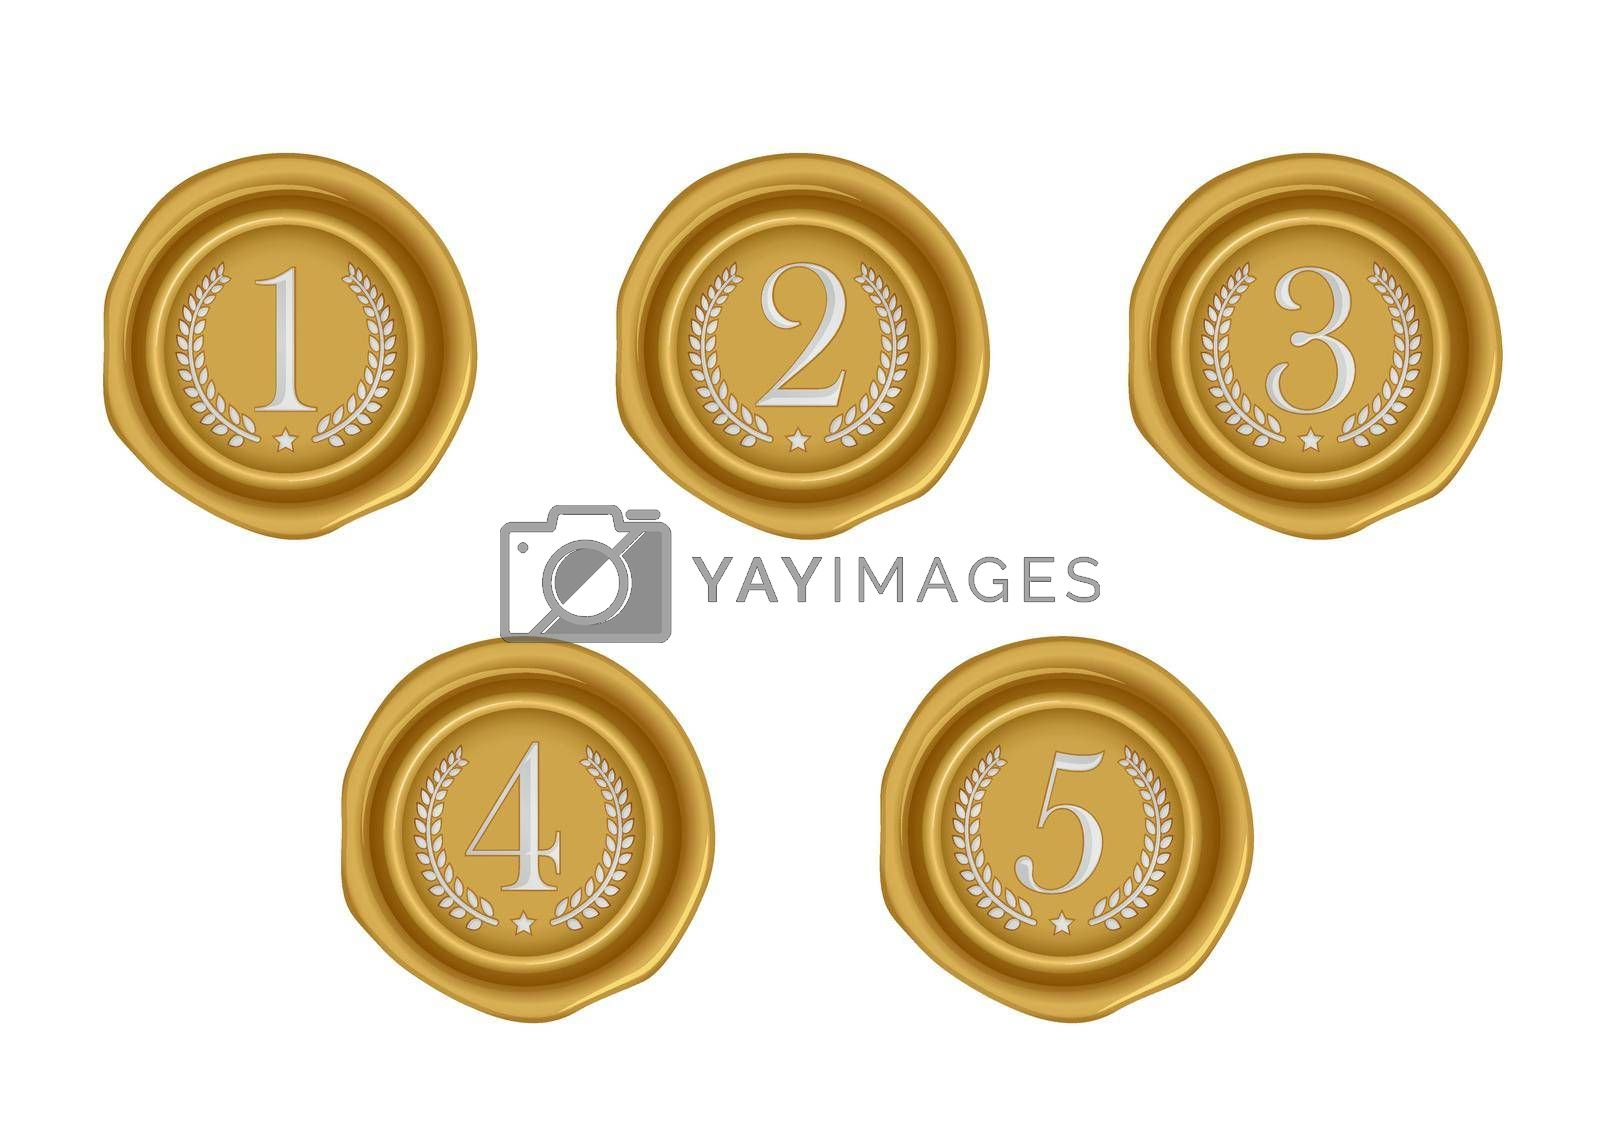 Sealing wax stamp vector illustration set ( number, ranking ) from 1st to 5th (gold)